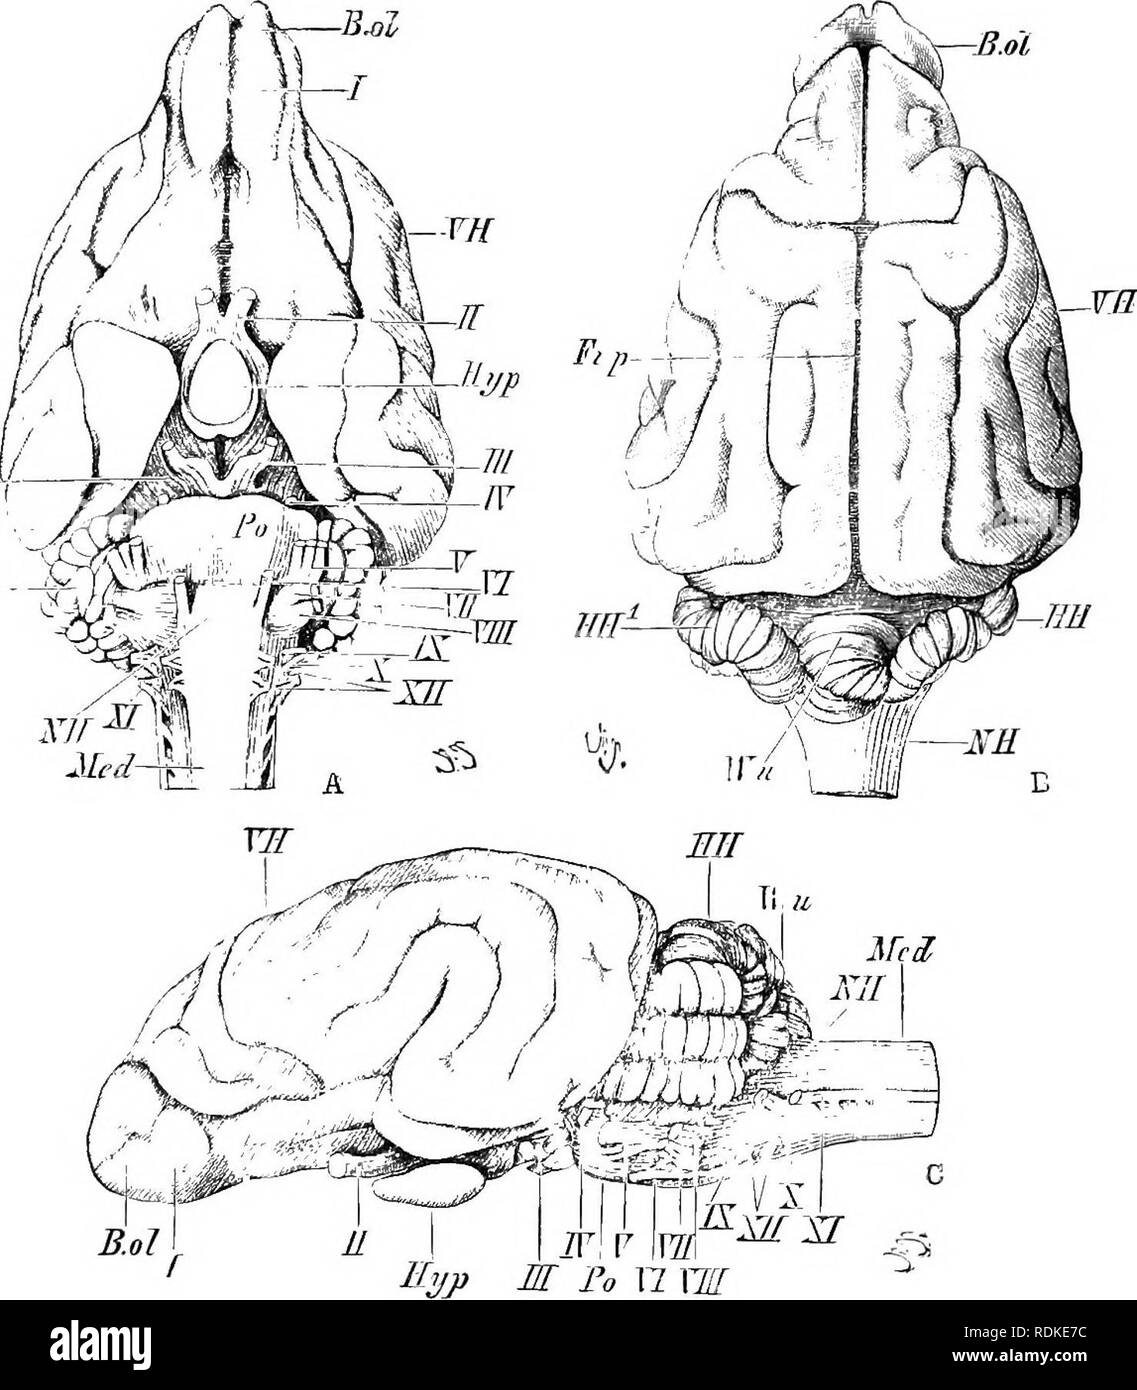 . The Cambridge natural history. Zoology. BRAIN OF CARNIVORA 389 surface of that bone. The digits of the Carnivora are mostly five, and are never less than four. The mode of progression may be digitigrade or plantigrade, and the intermediate semidigitigrade r- Ellr - ^. Fig. 192.—Brain of Dog. A, Ventral : B, dorsal ; C, lateral aspect. B.ol, Olfactory lobe ; Cr.ce, crura cerebri : Fi.p, great longitudinal fissine ; ////, HH^, lateral lobes of cerebellum ; Hyp. hypophysis ; MeJ, spinal cord ; SH, medulla oblongata ; I'i pons Varolii; VH, cerebral hemispheres ; Wu, middle lobe (vermis) of cere - Stock Image